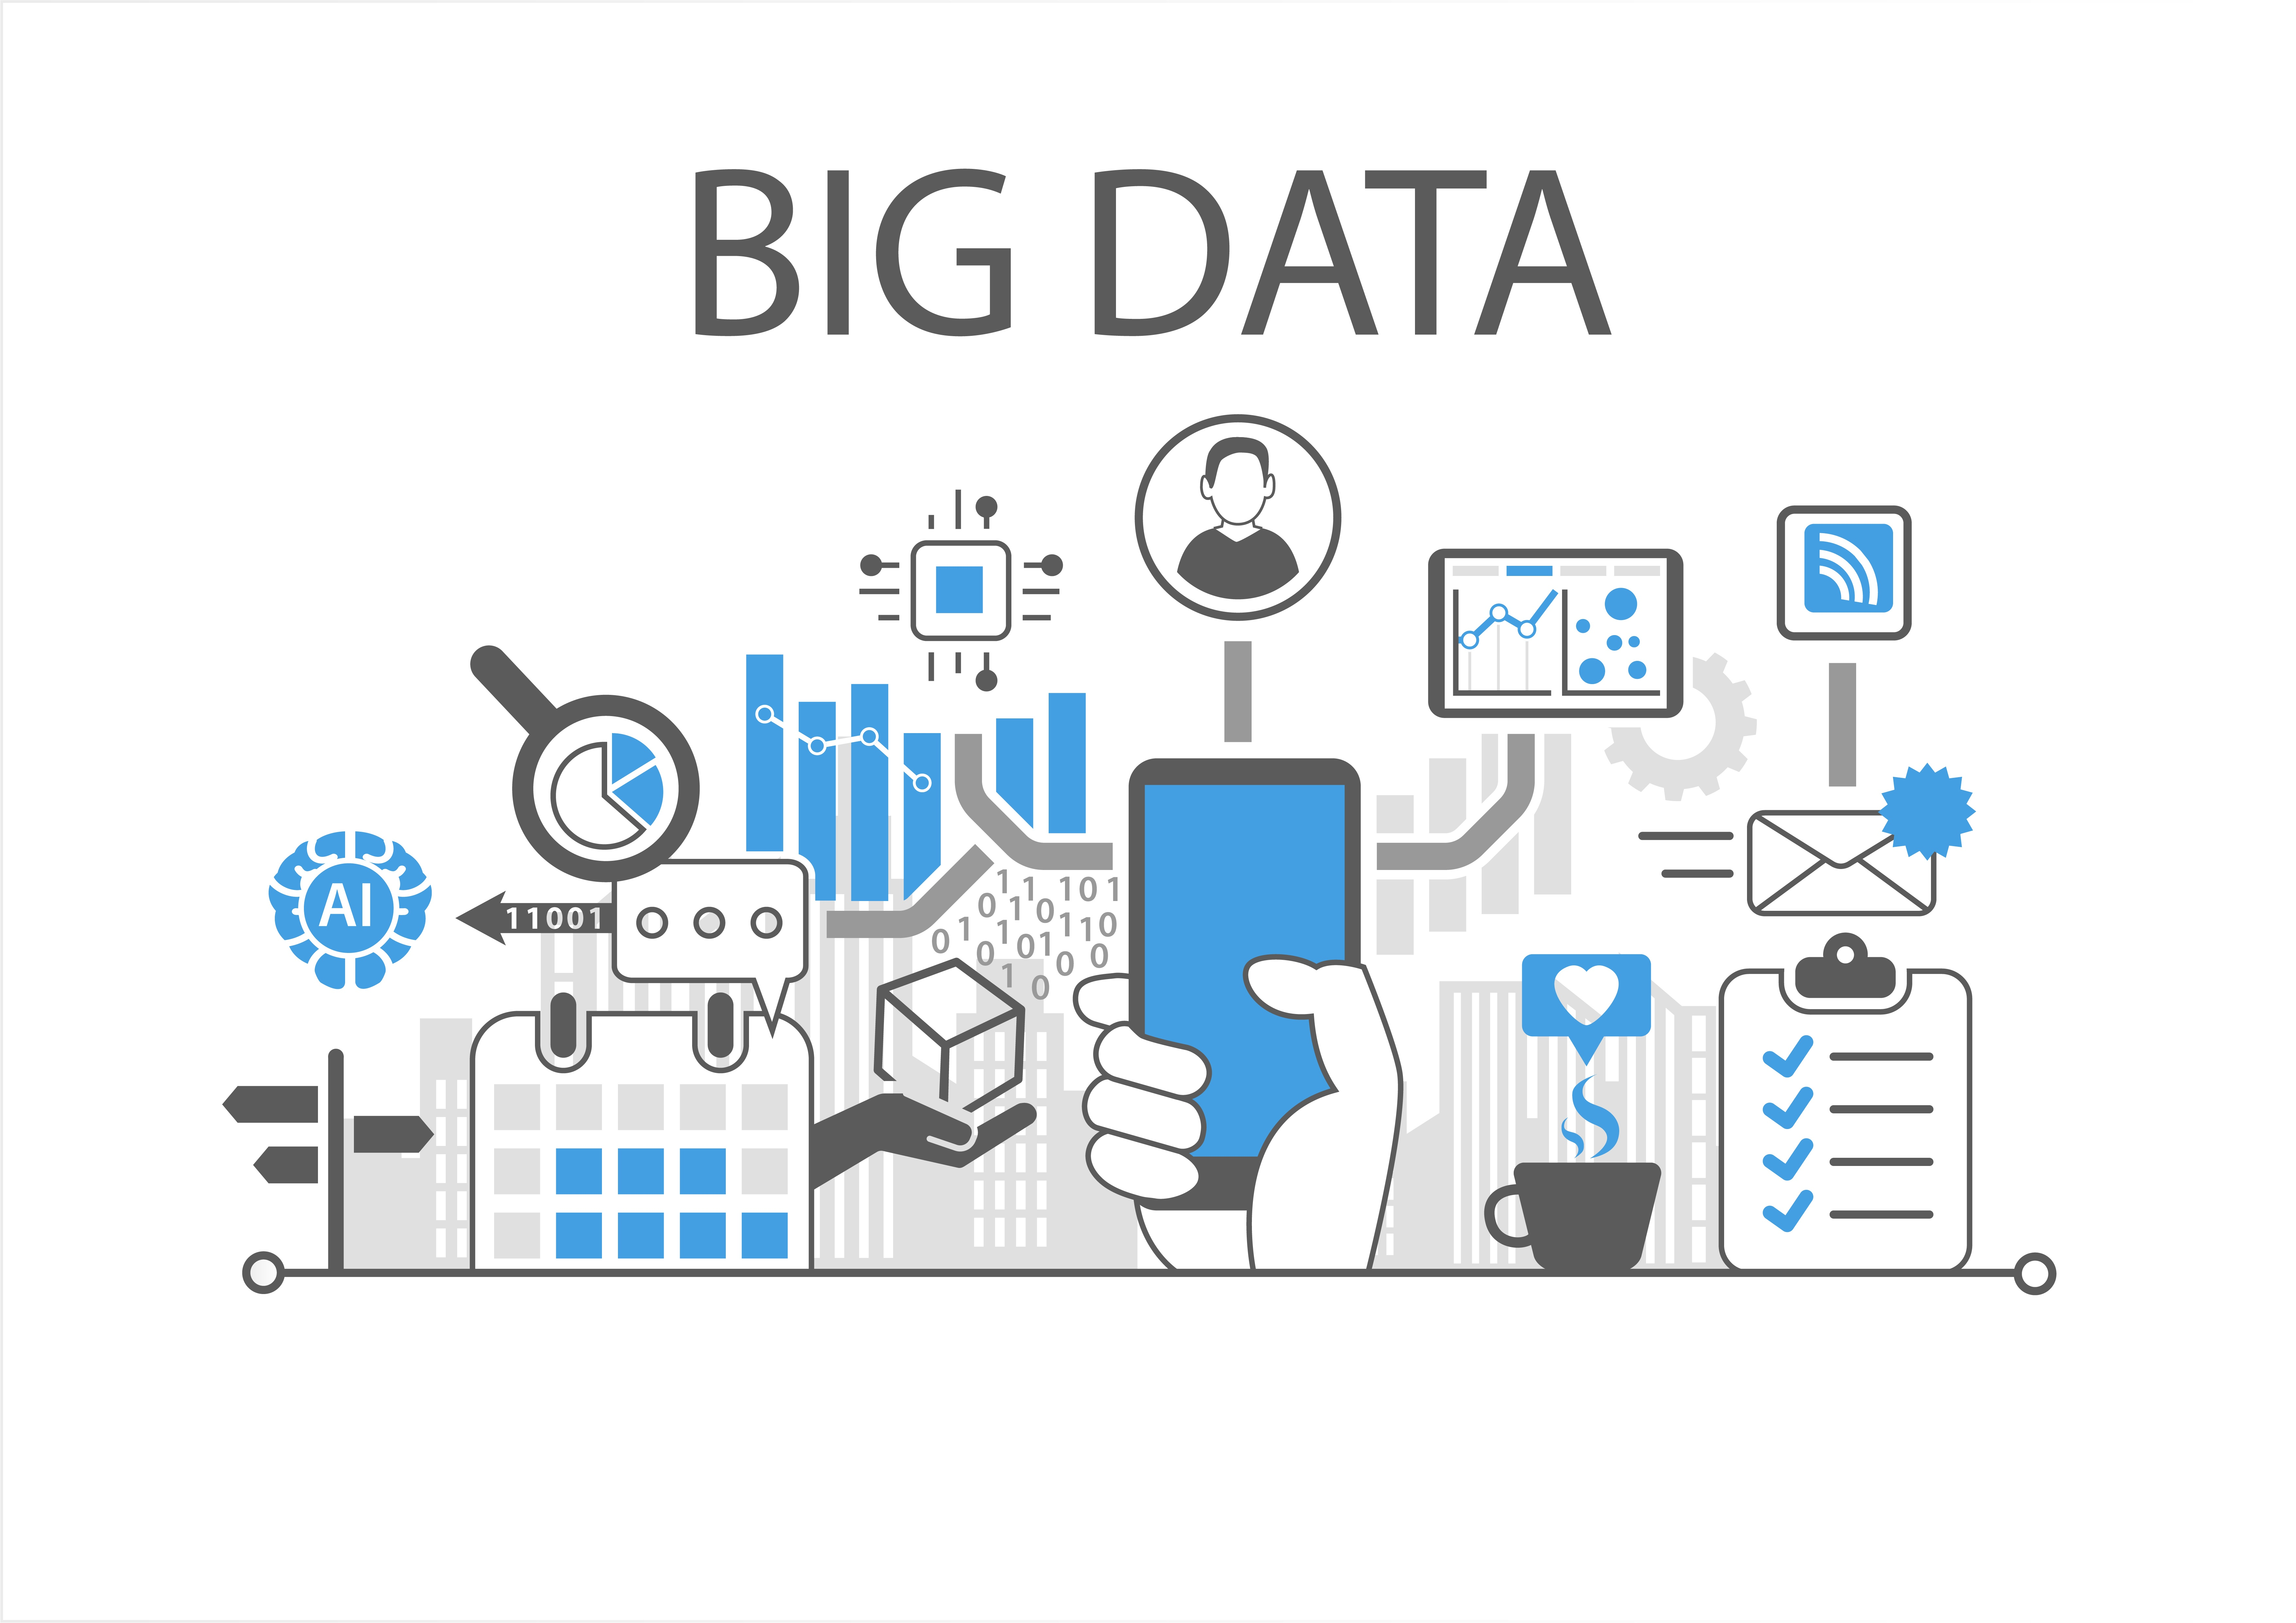 Big Data isn't just for big companies